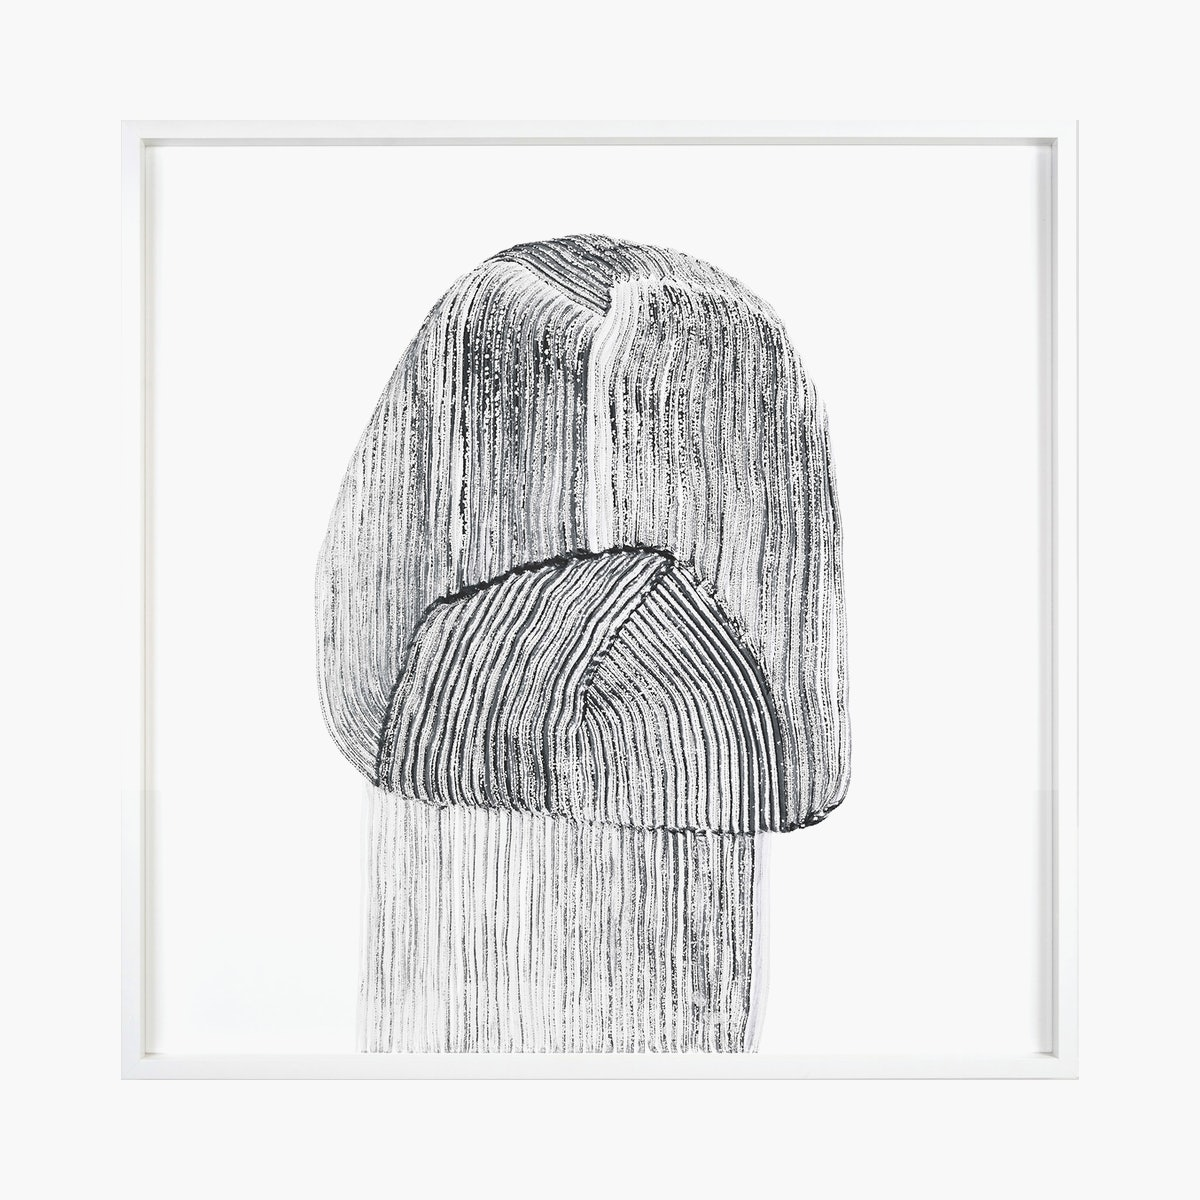 Drawing 9, Bouroullec